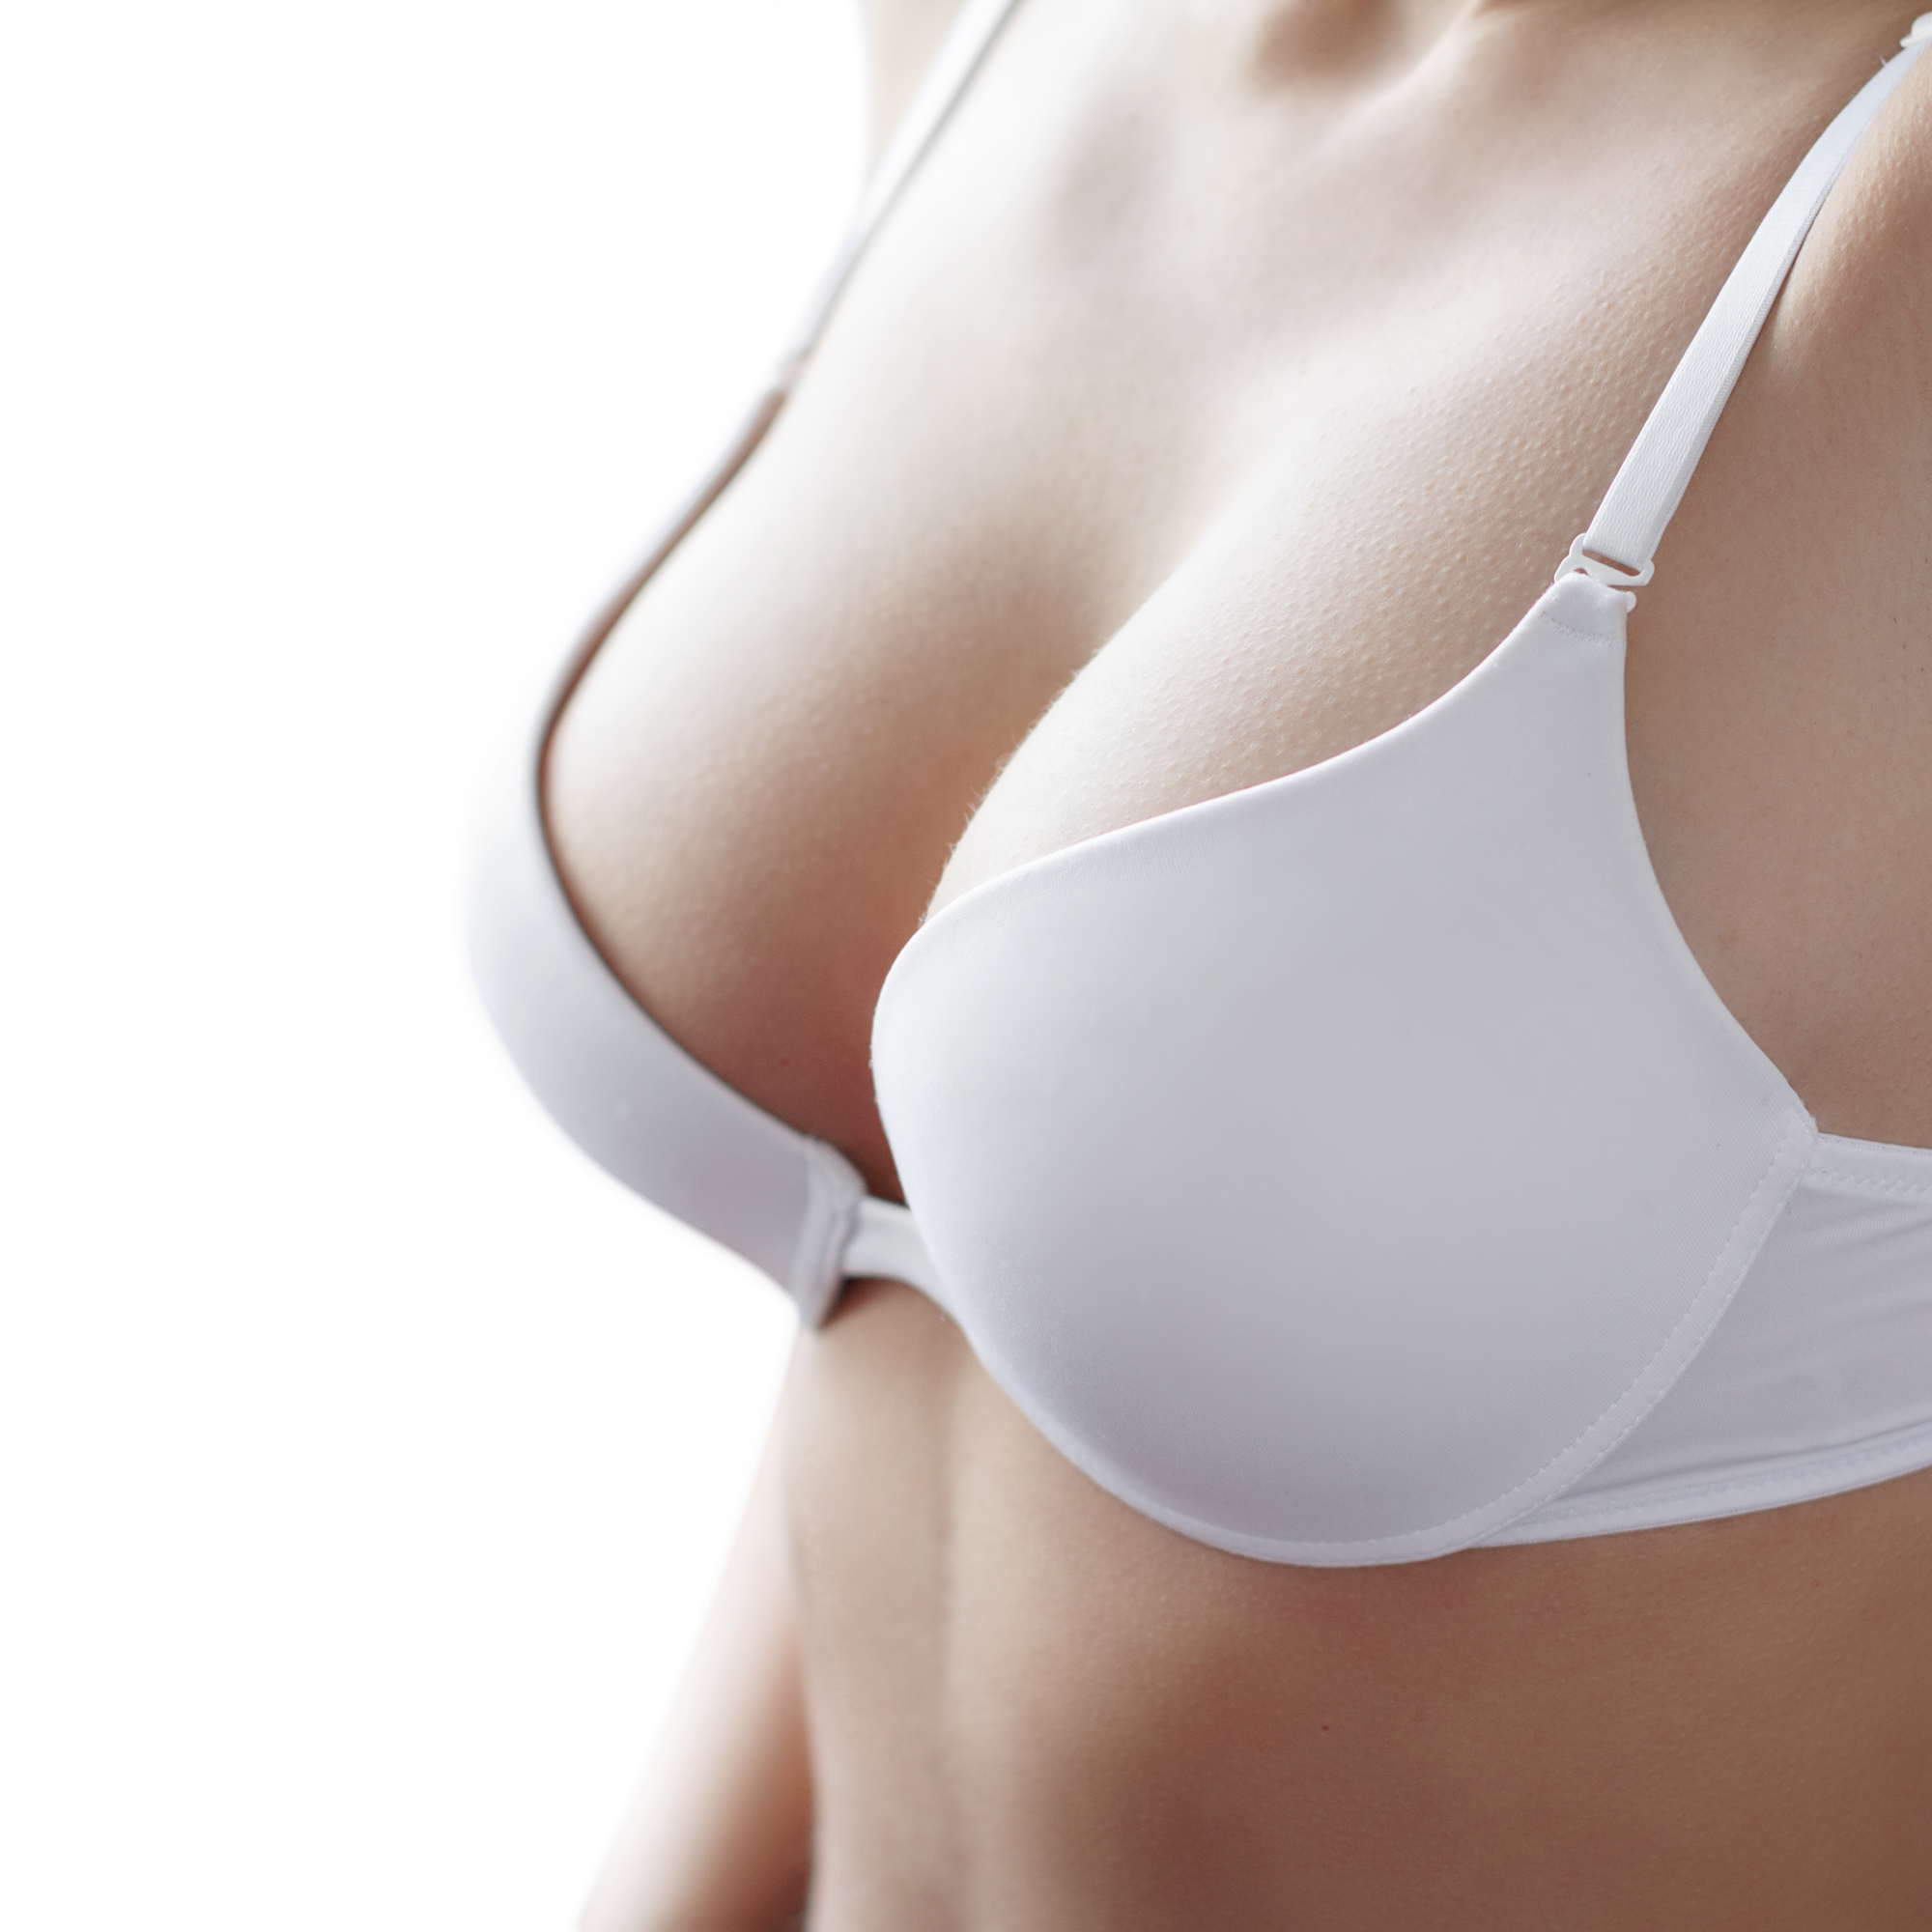 The 5 Ways Your Boobs Change Throughout the Month